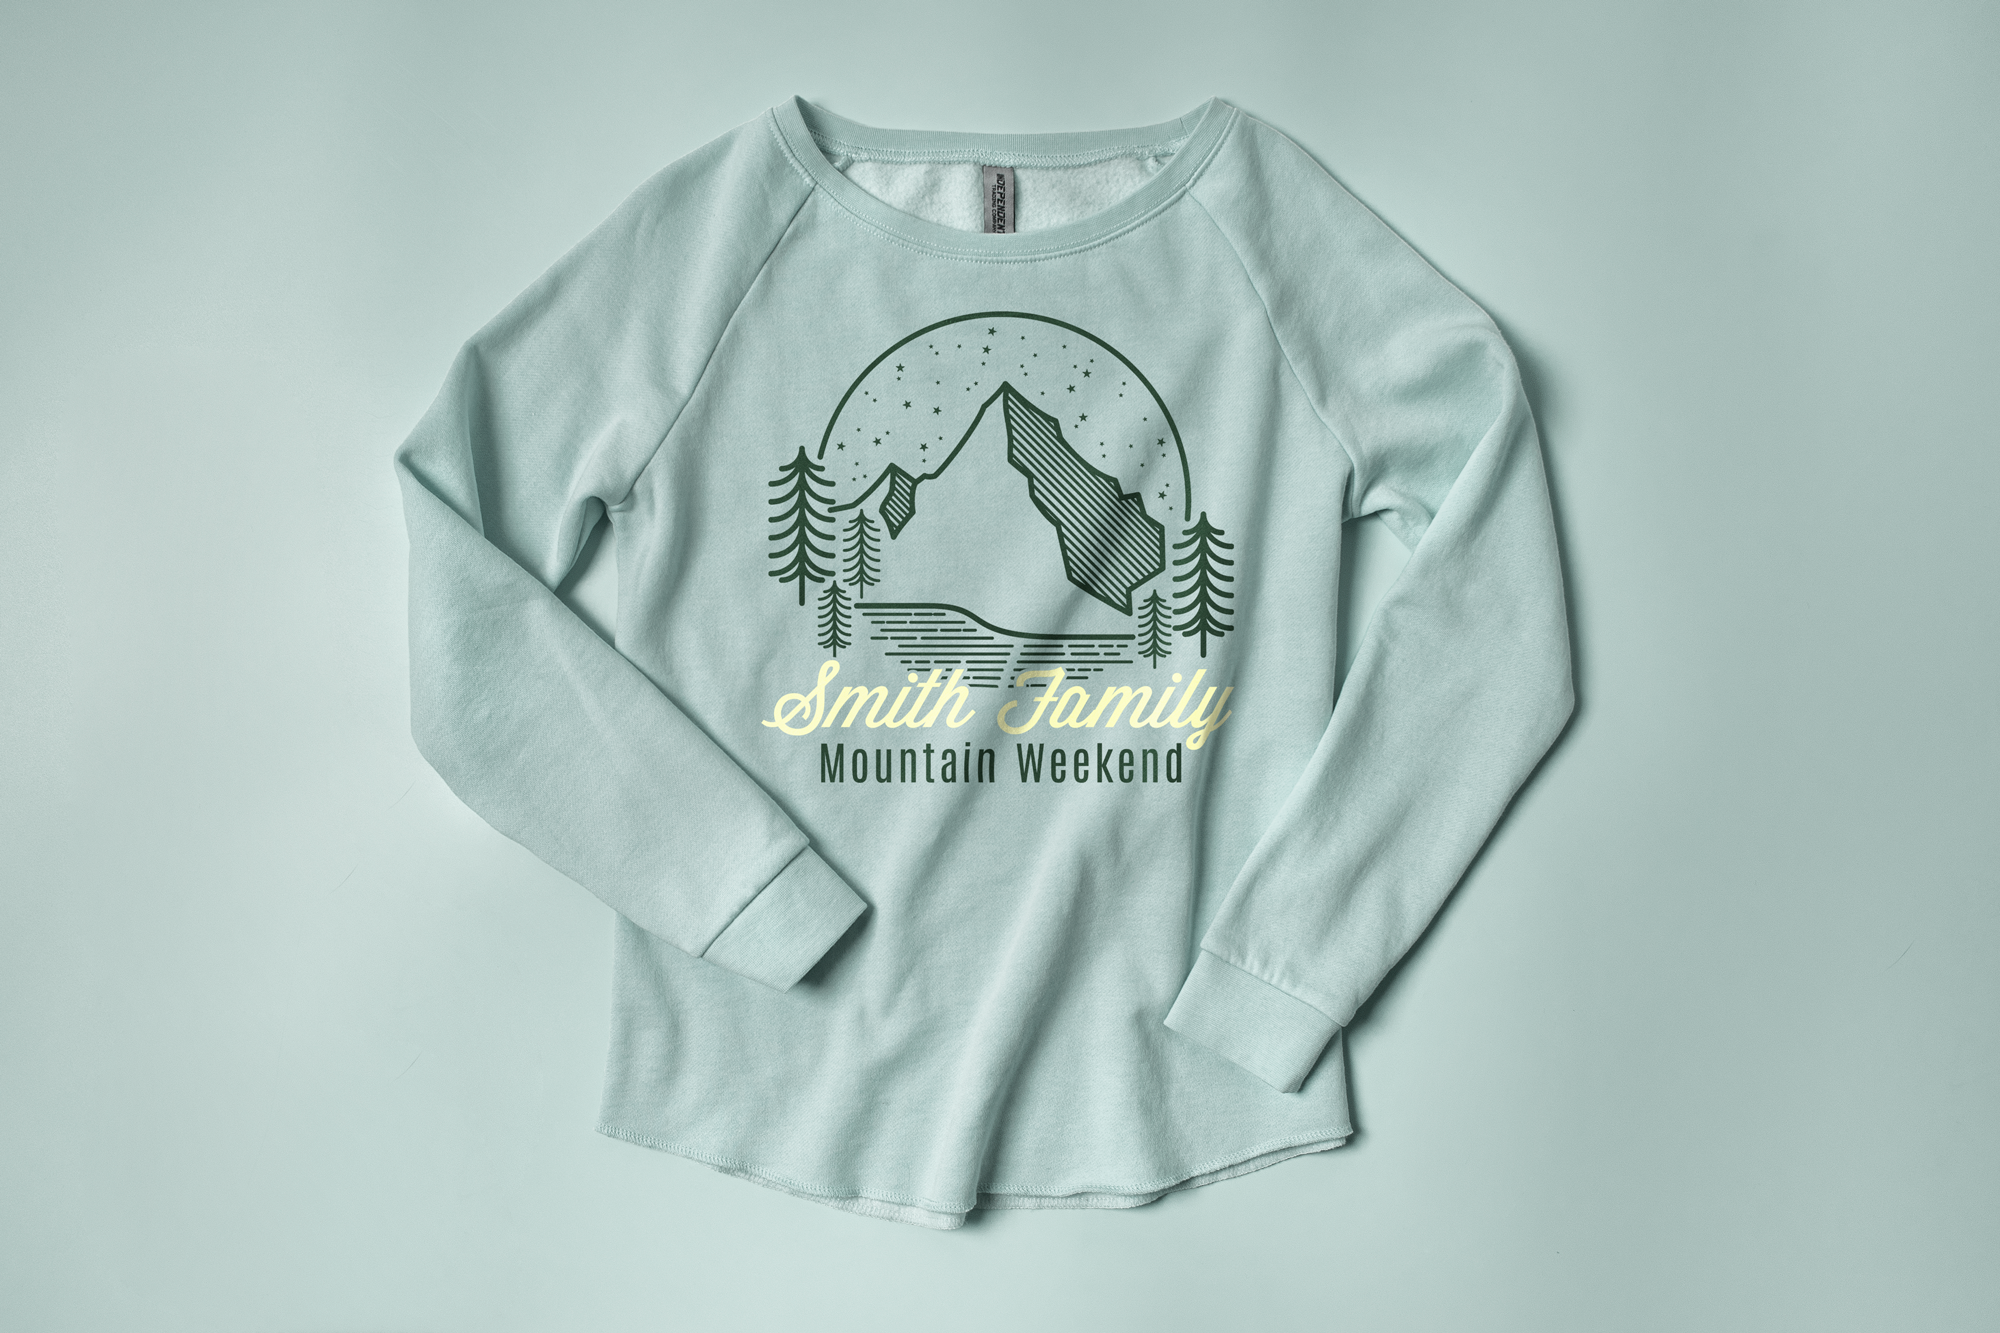 Flatlay of the Independent Trading Ladies Wave Wash Fleece Sweatshirt showing a custom family vacation design.